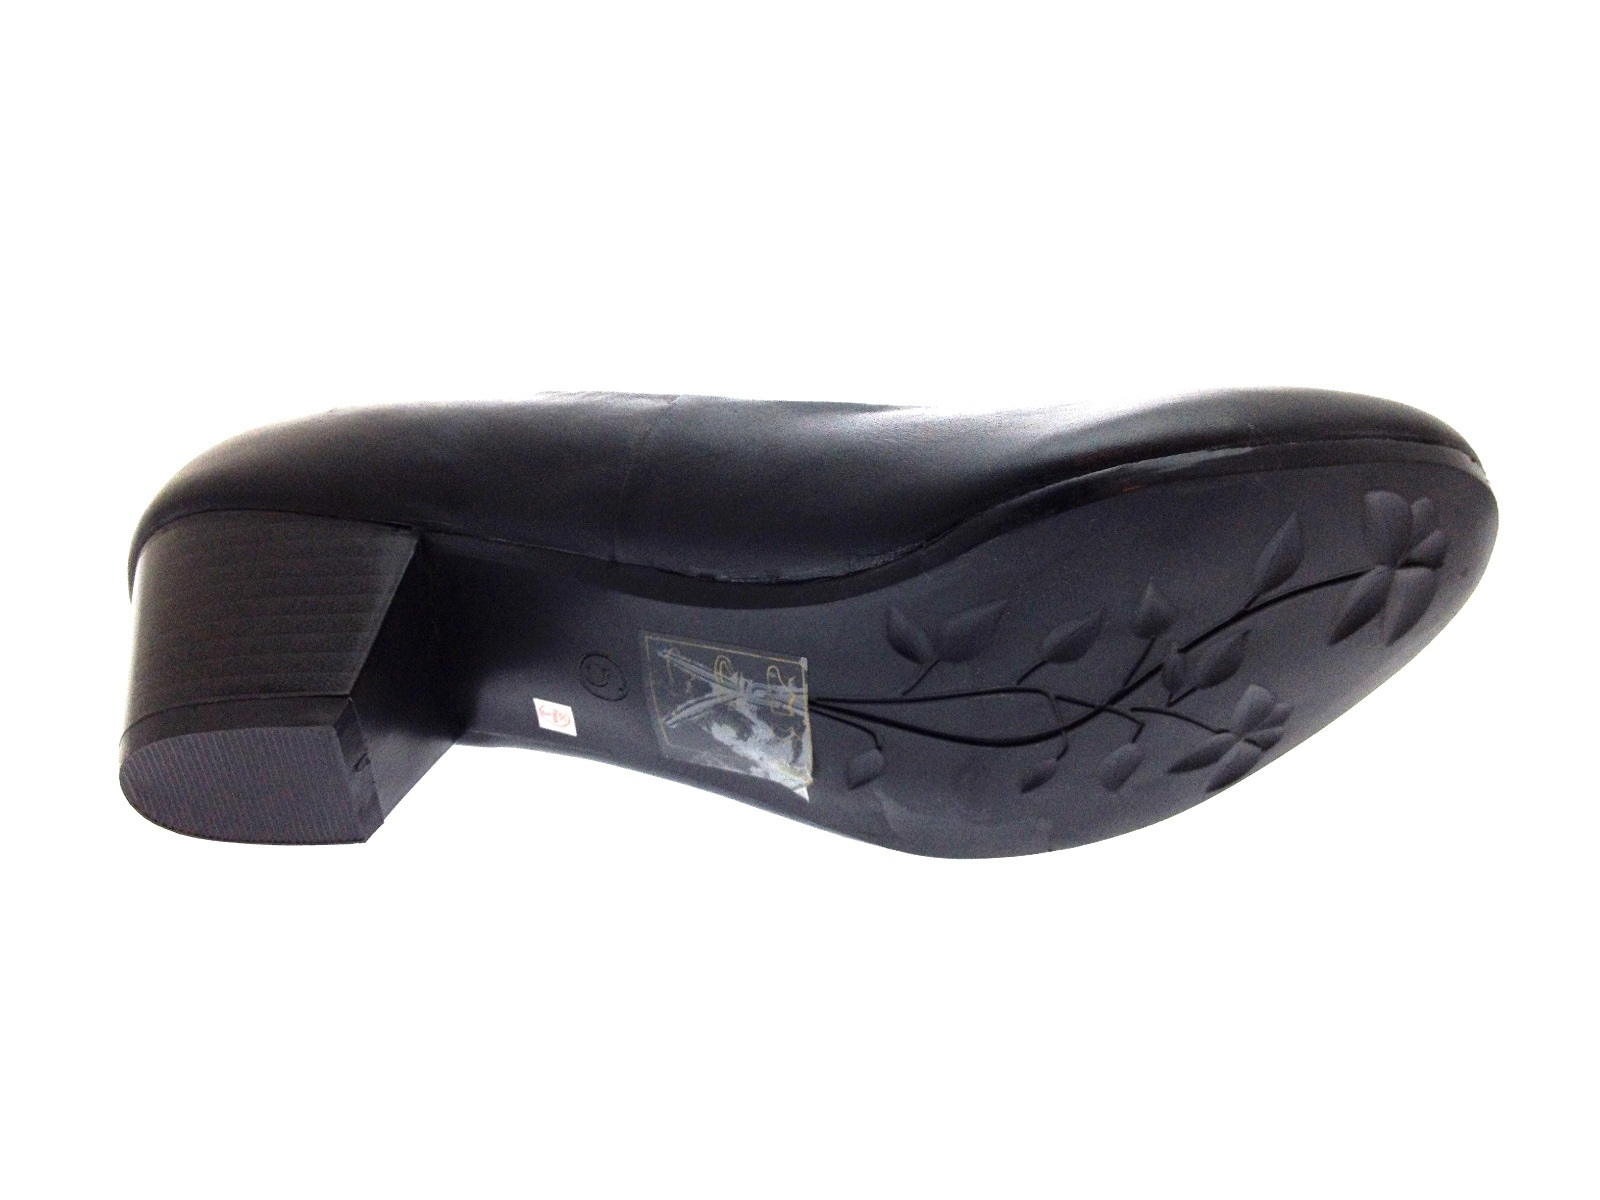 Womens wide shoes uk